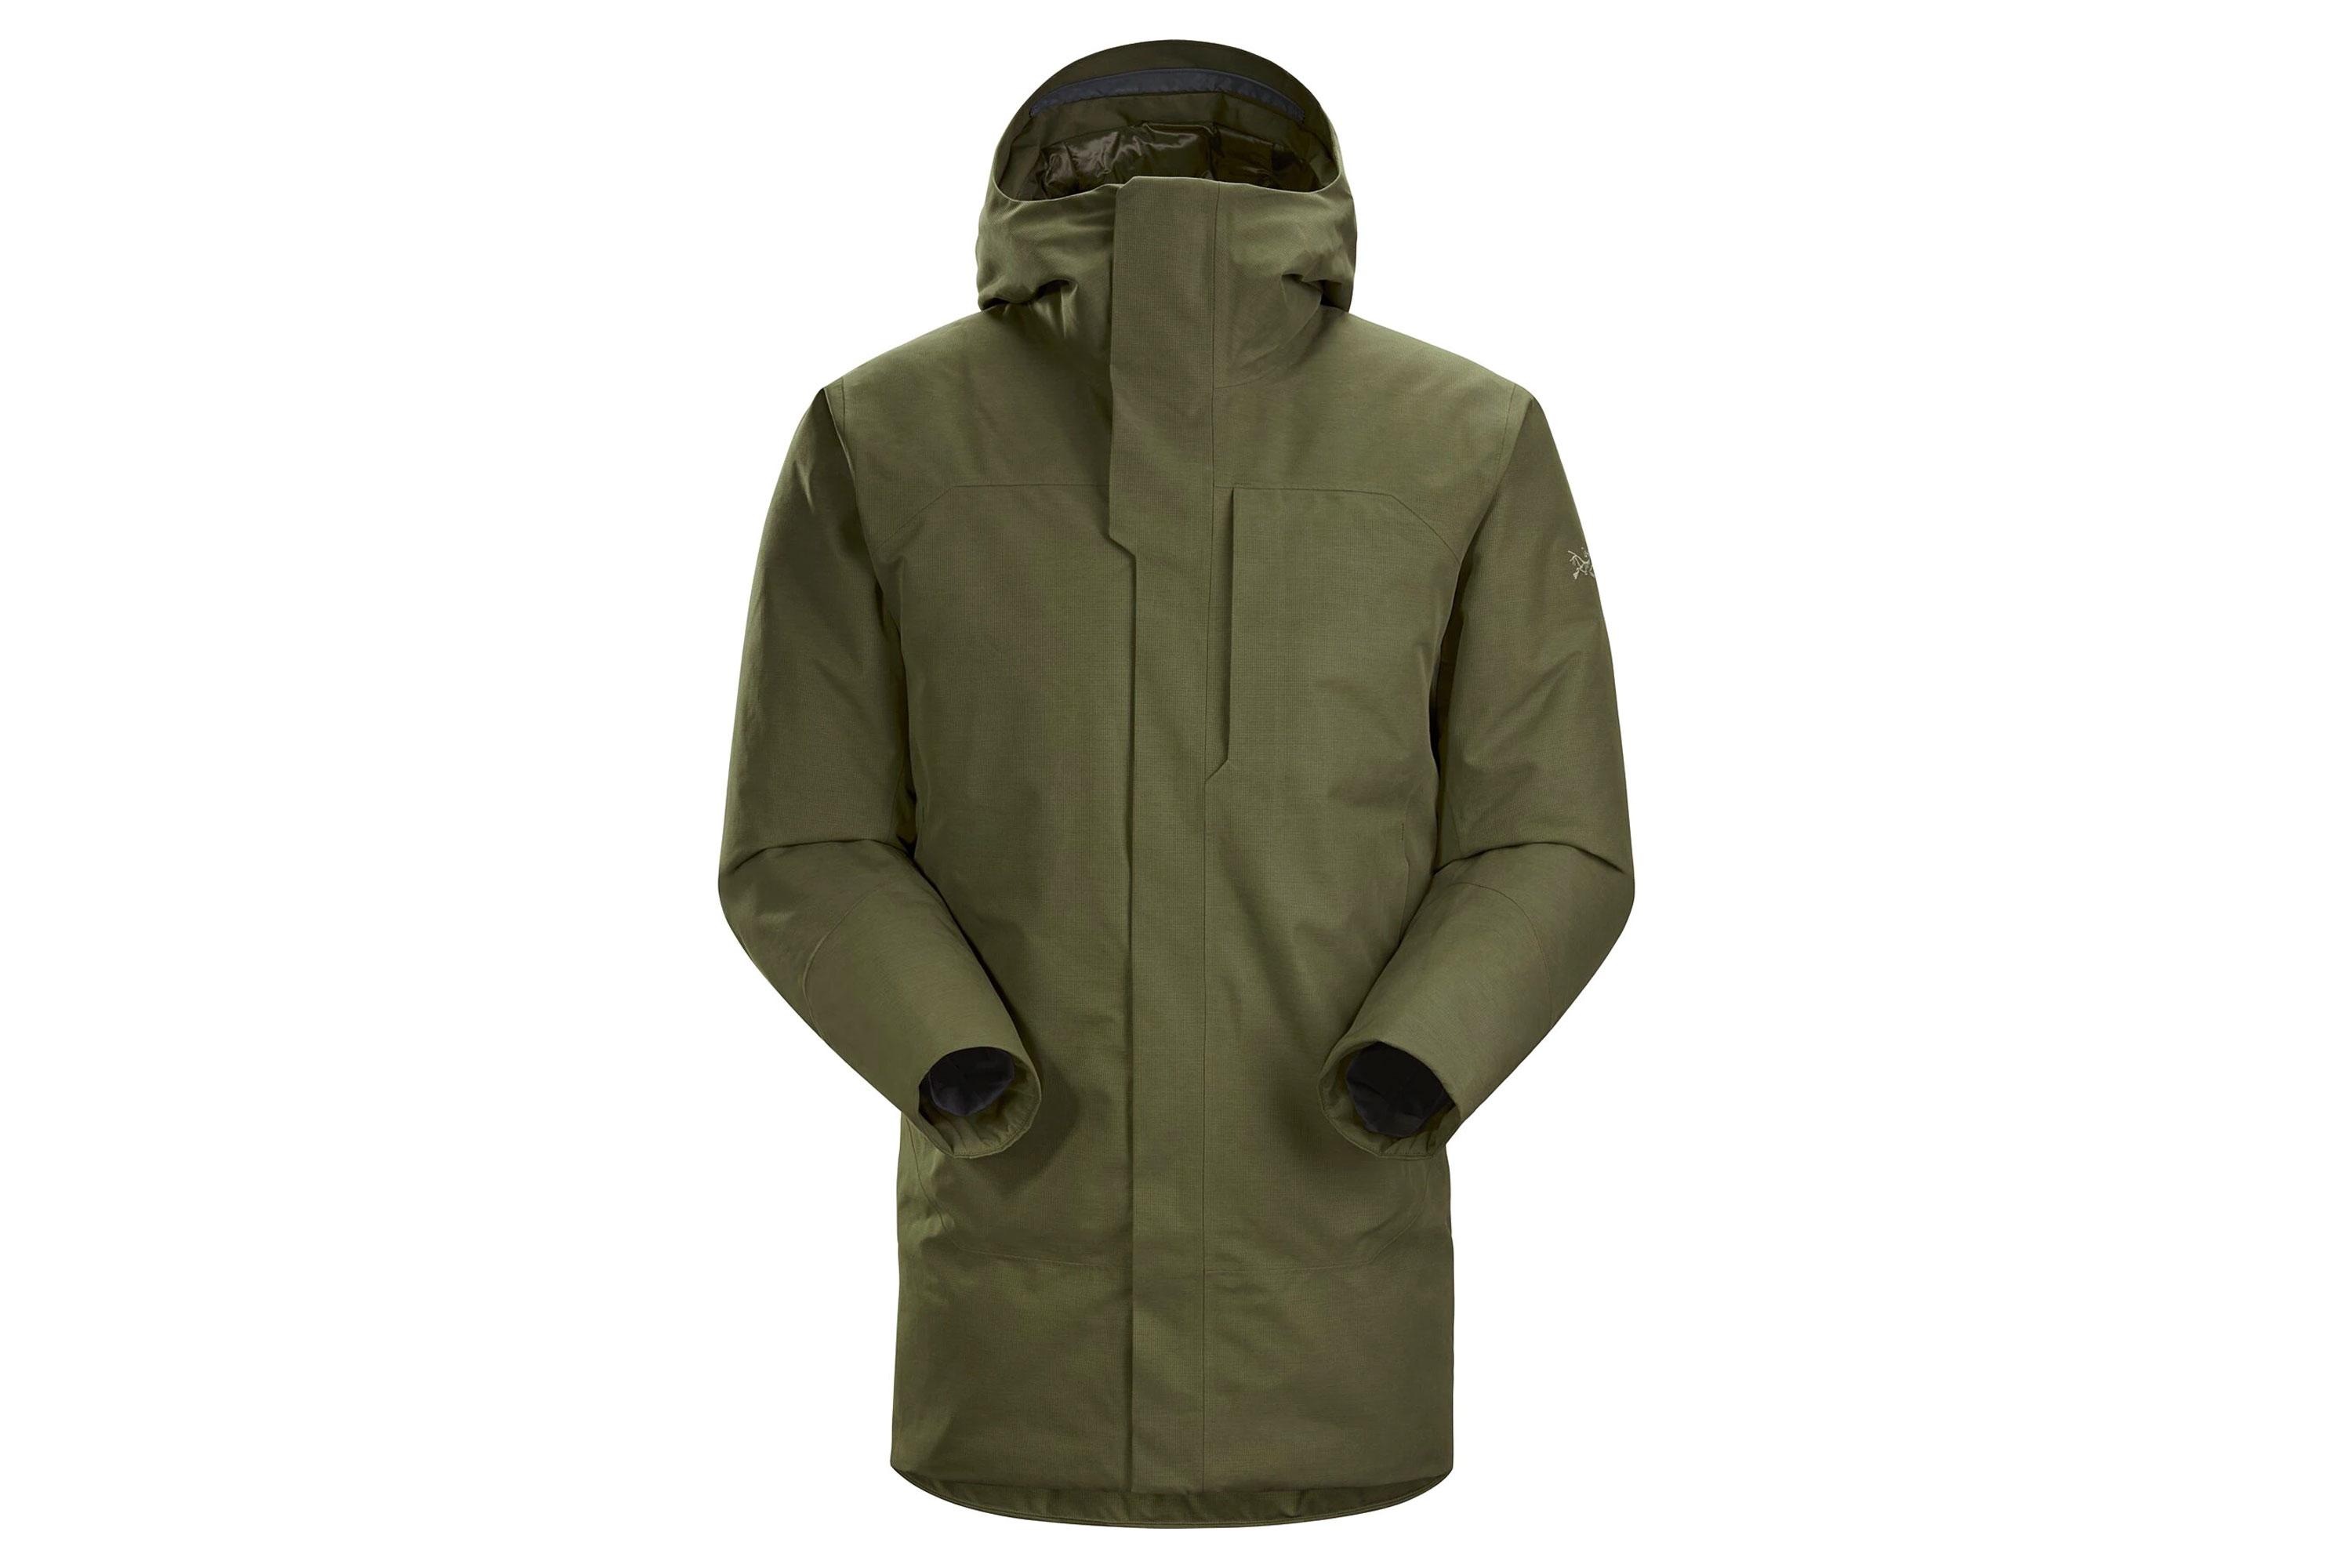 GJ_Best_Winter_parka_Arcteryx_THERME_PARKA